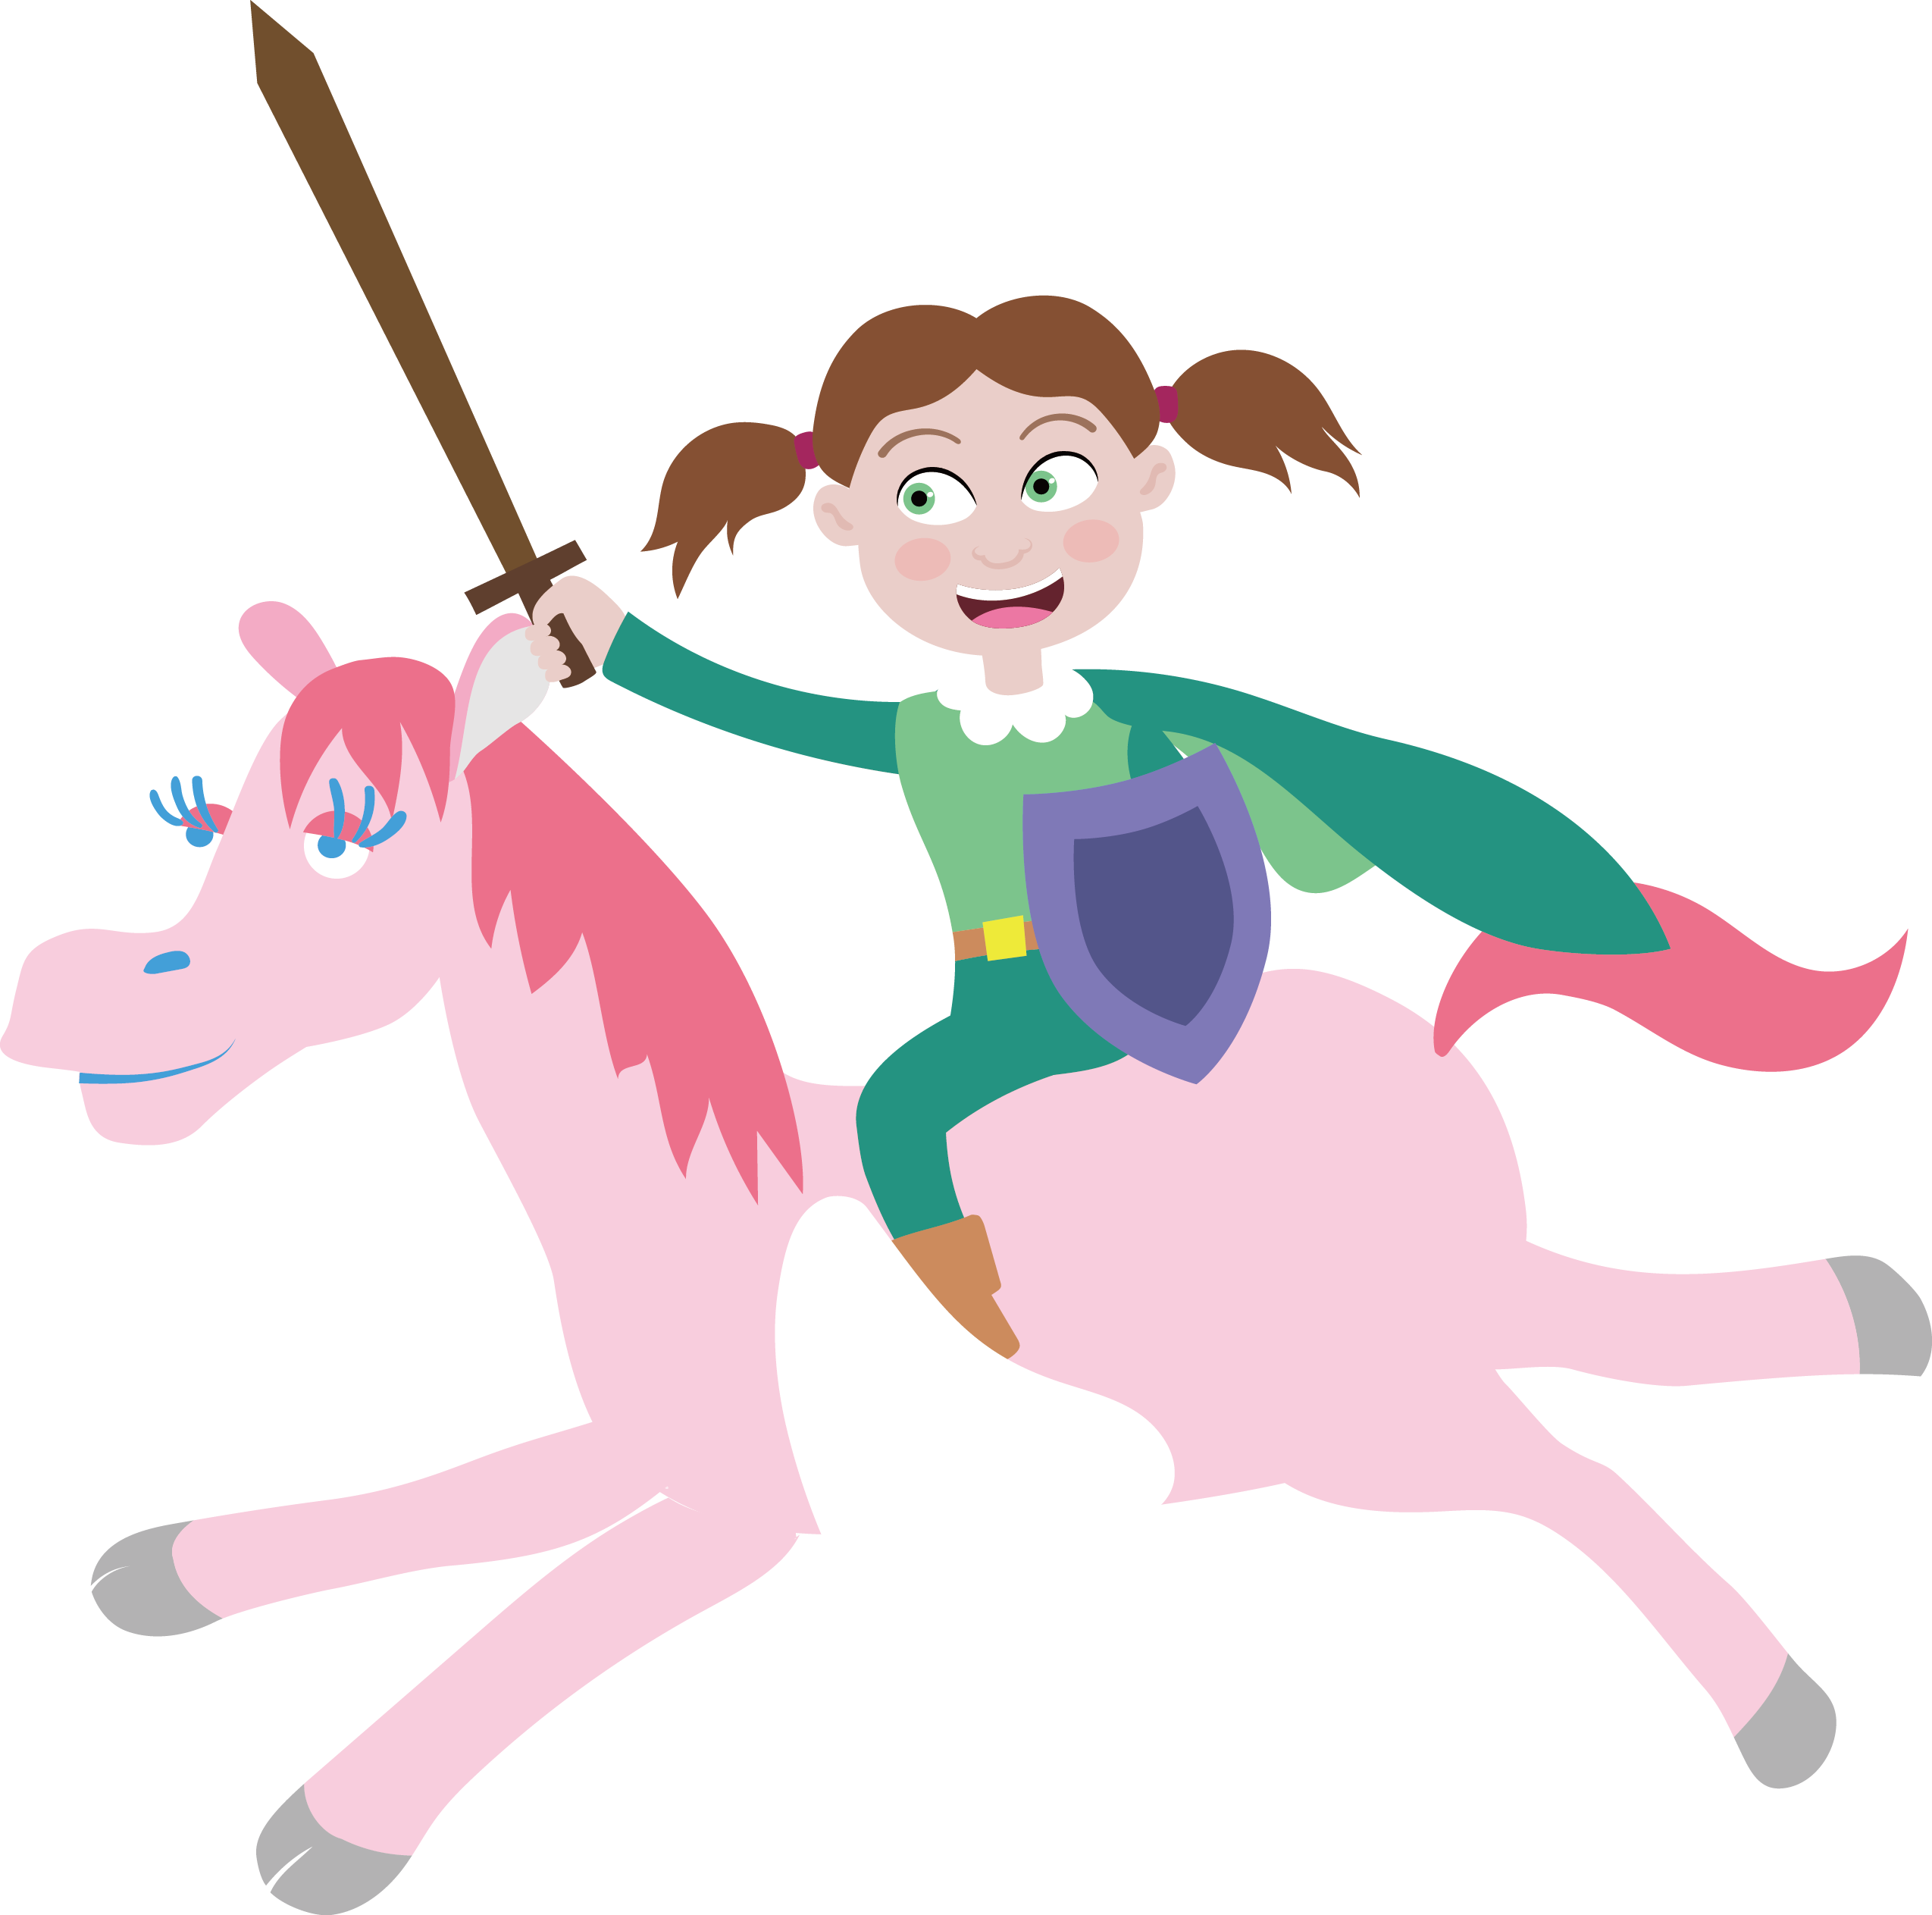 Female frames illustrations hd. Knight clipart victorious